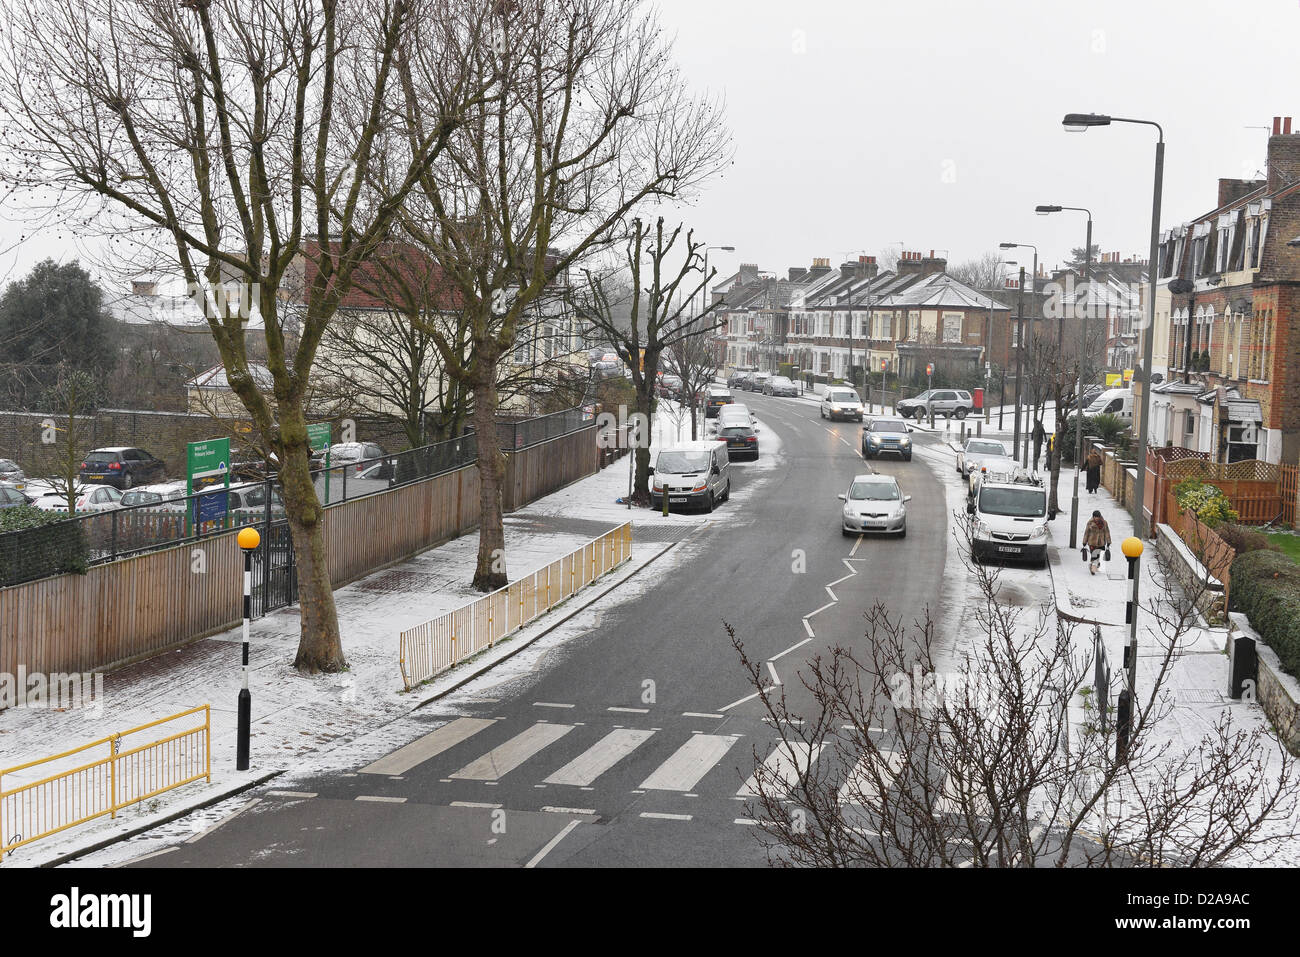 London, UK, 18th January 2013. Light snow starts to fall in the morning in Wandsworth, south west London. Credit: Stock Photo